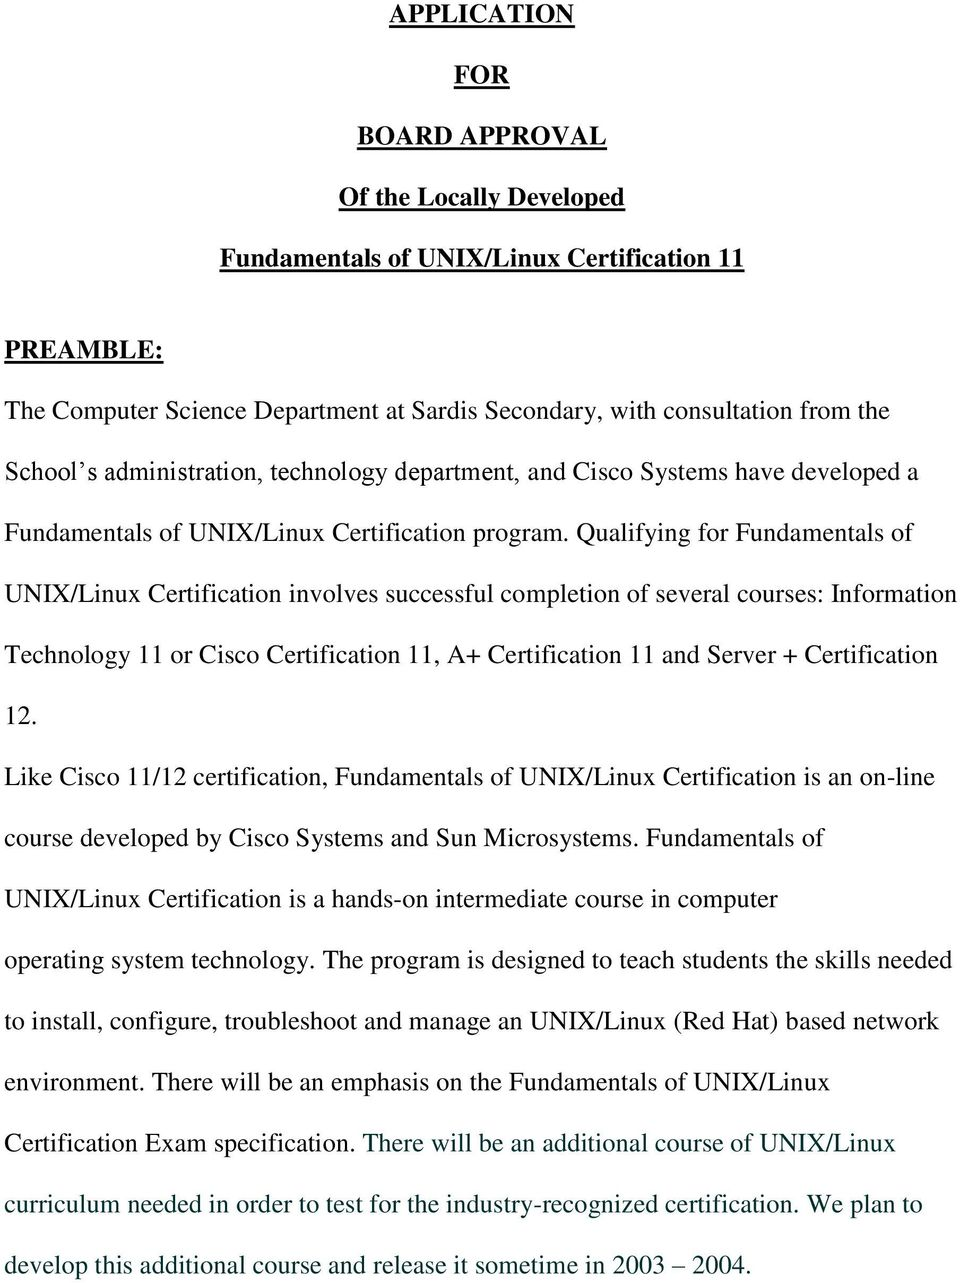 Qualifying for Fundamentals of UNIX/Linux Certification involves successful completion of several courses: Information Technology 11 or Cisco Certification 11, A+ Certification 11 and Server +